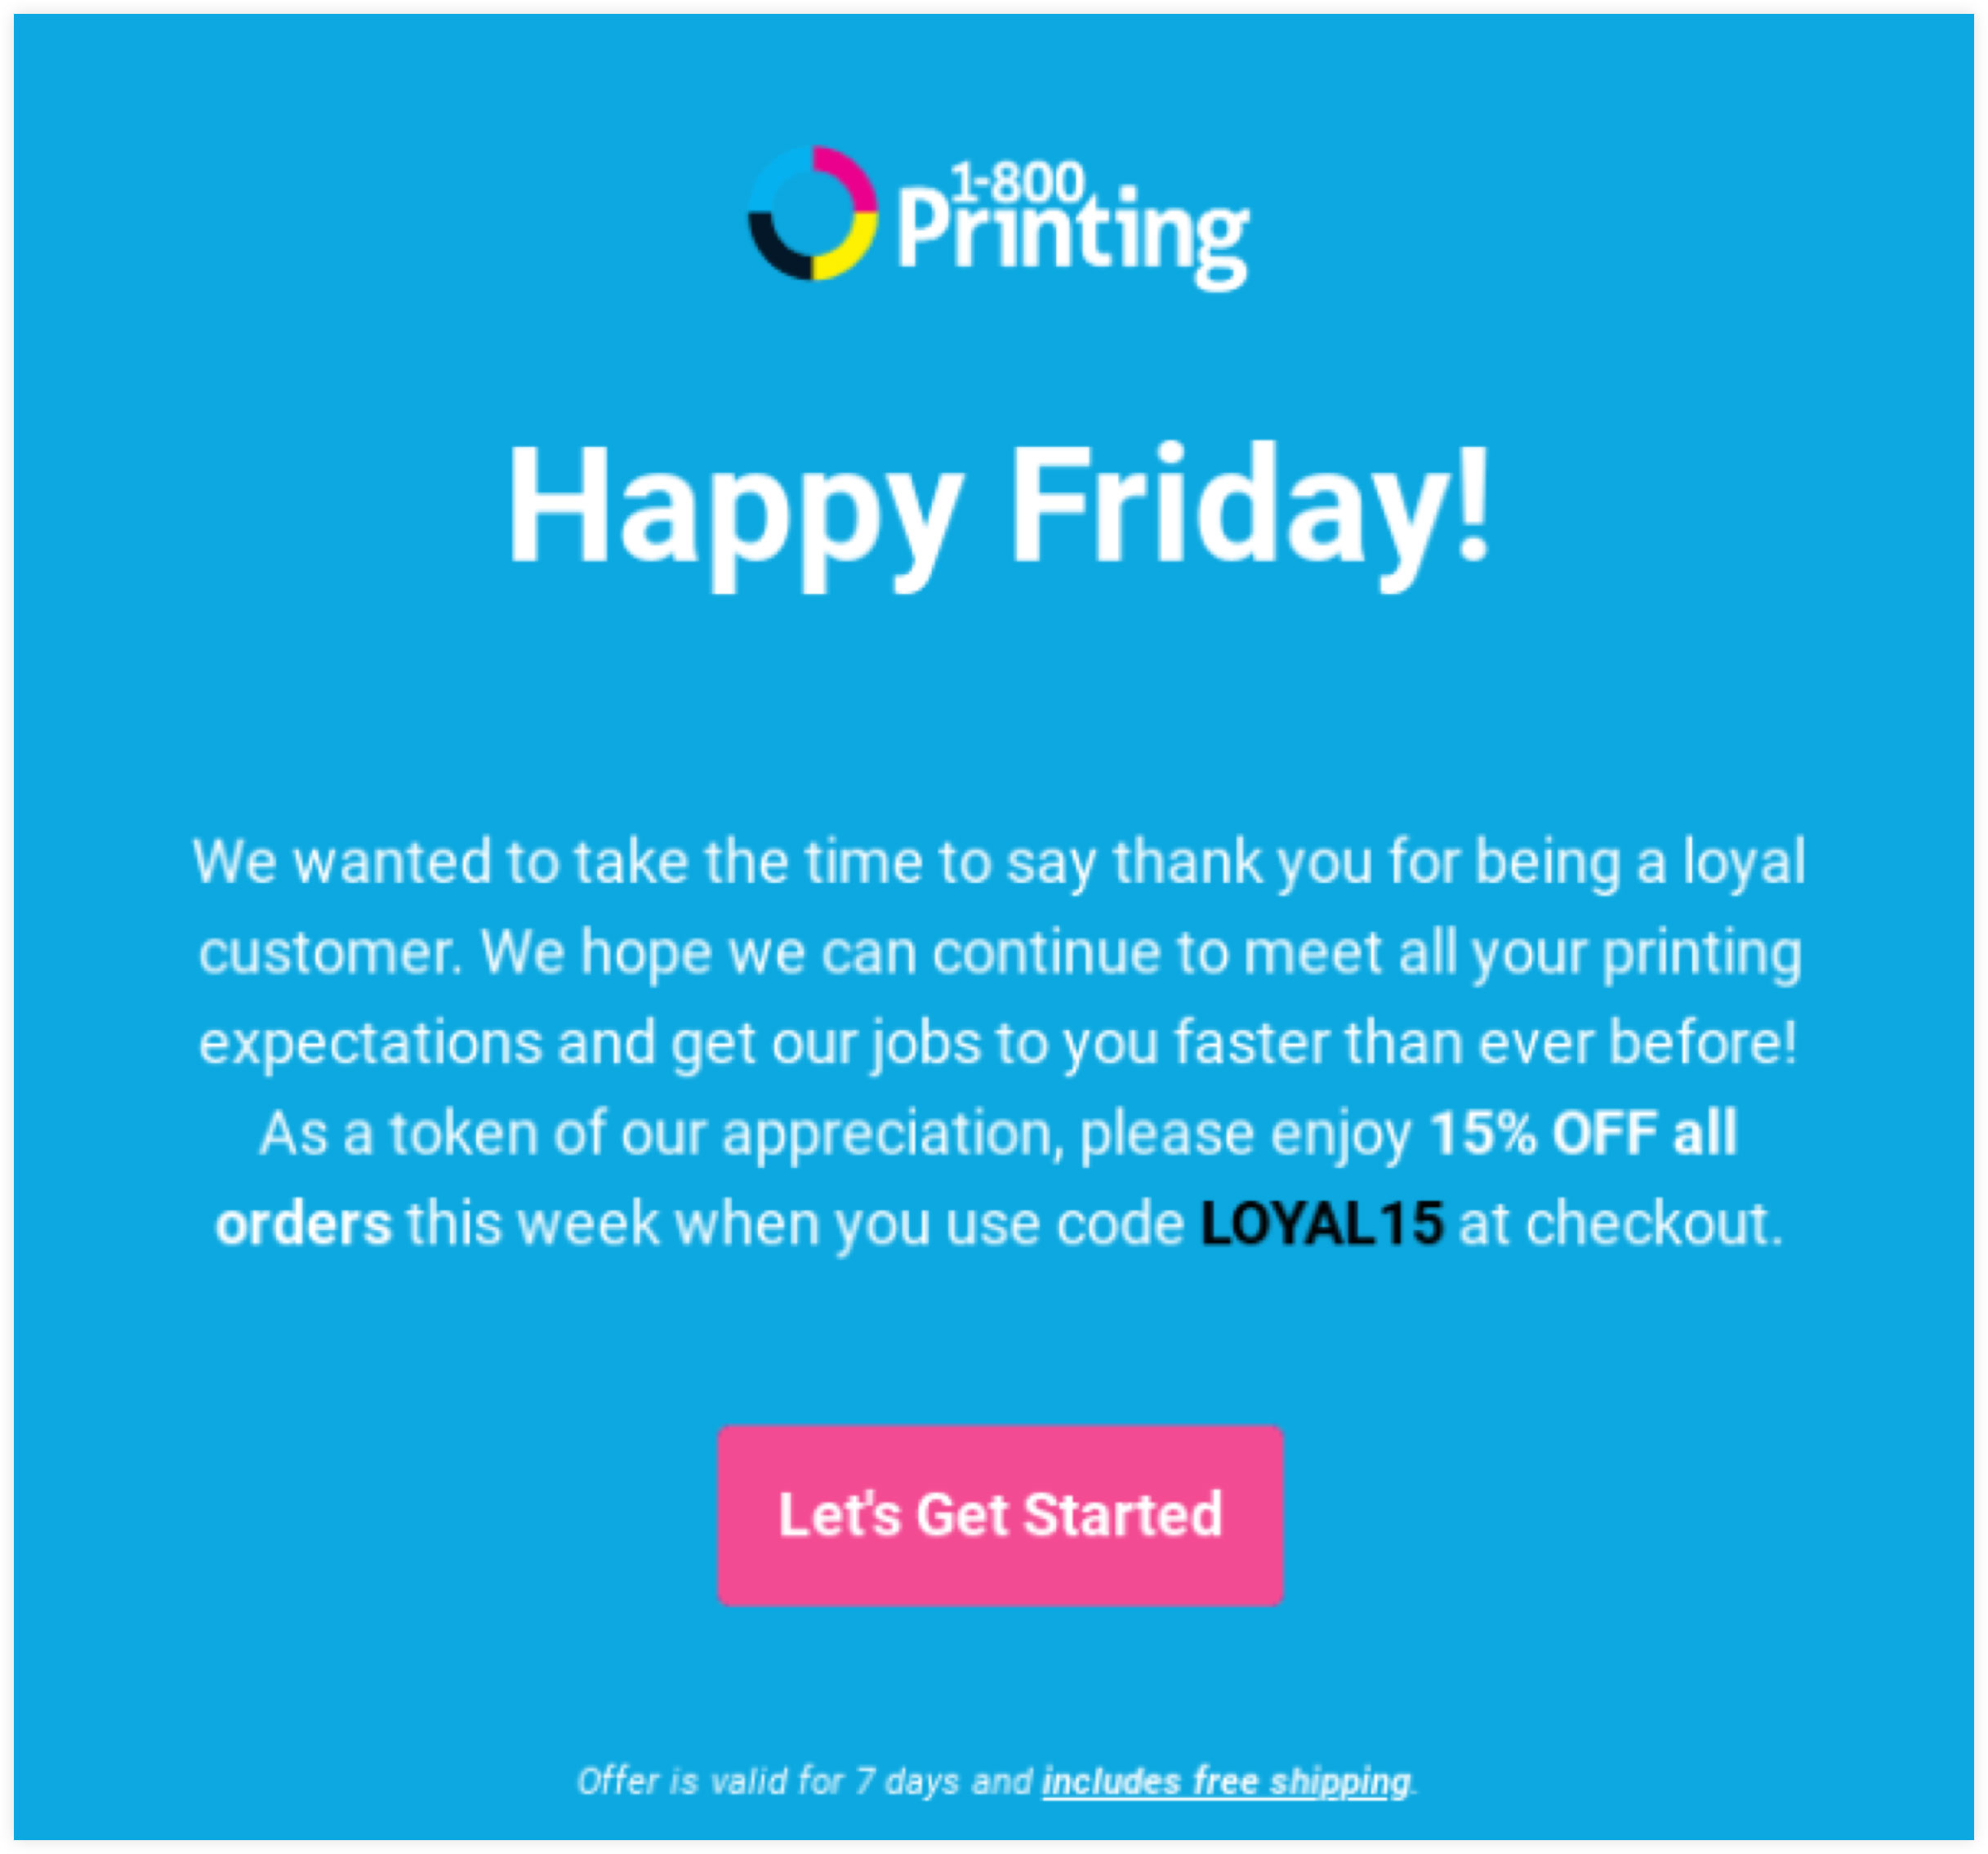 1-800 Printing Email Example | ClickFunnels